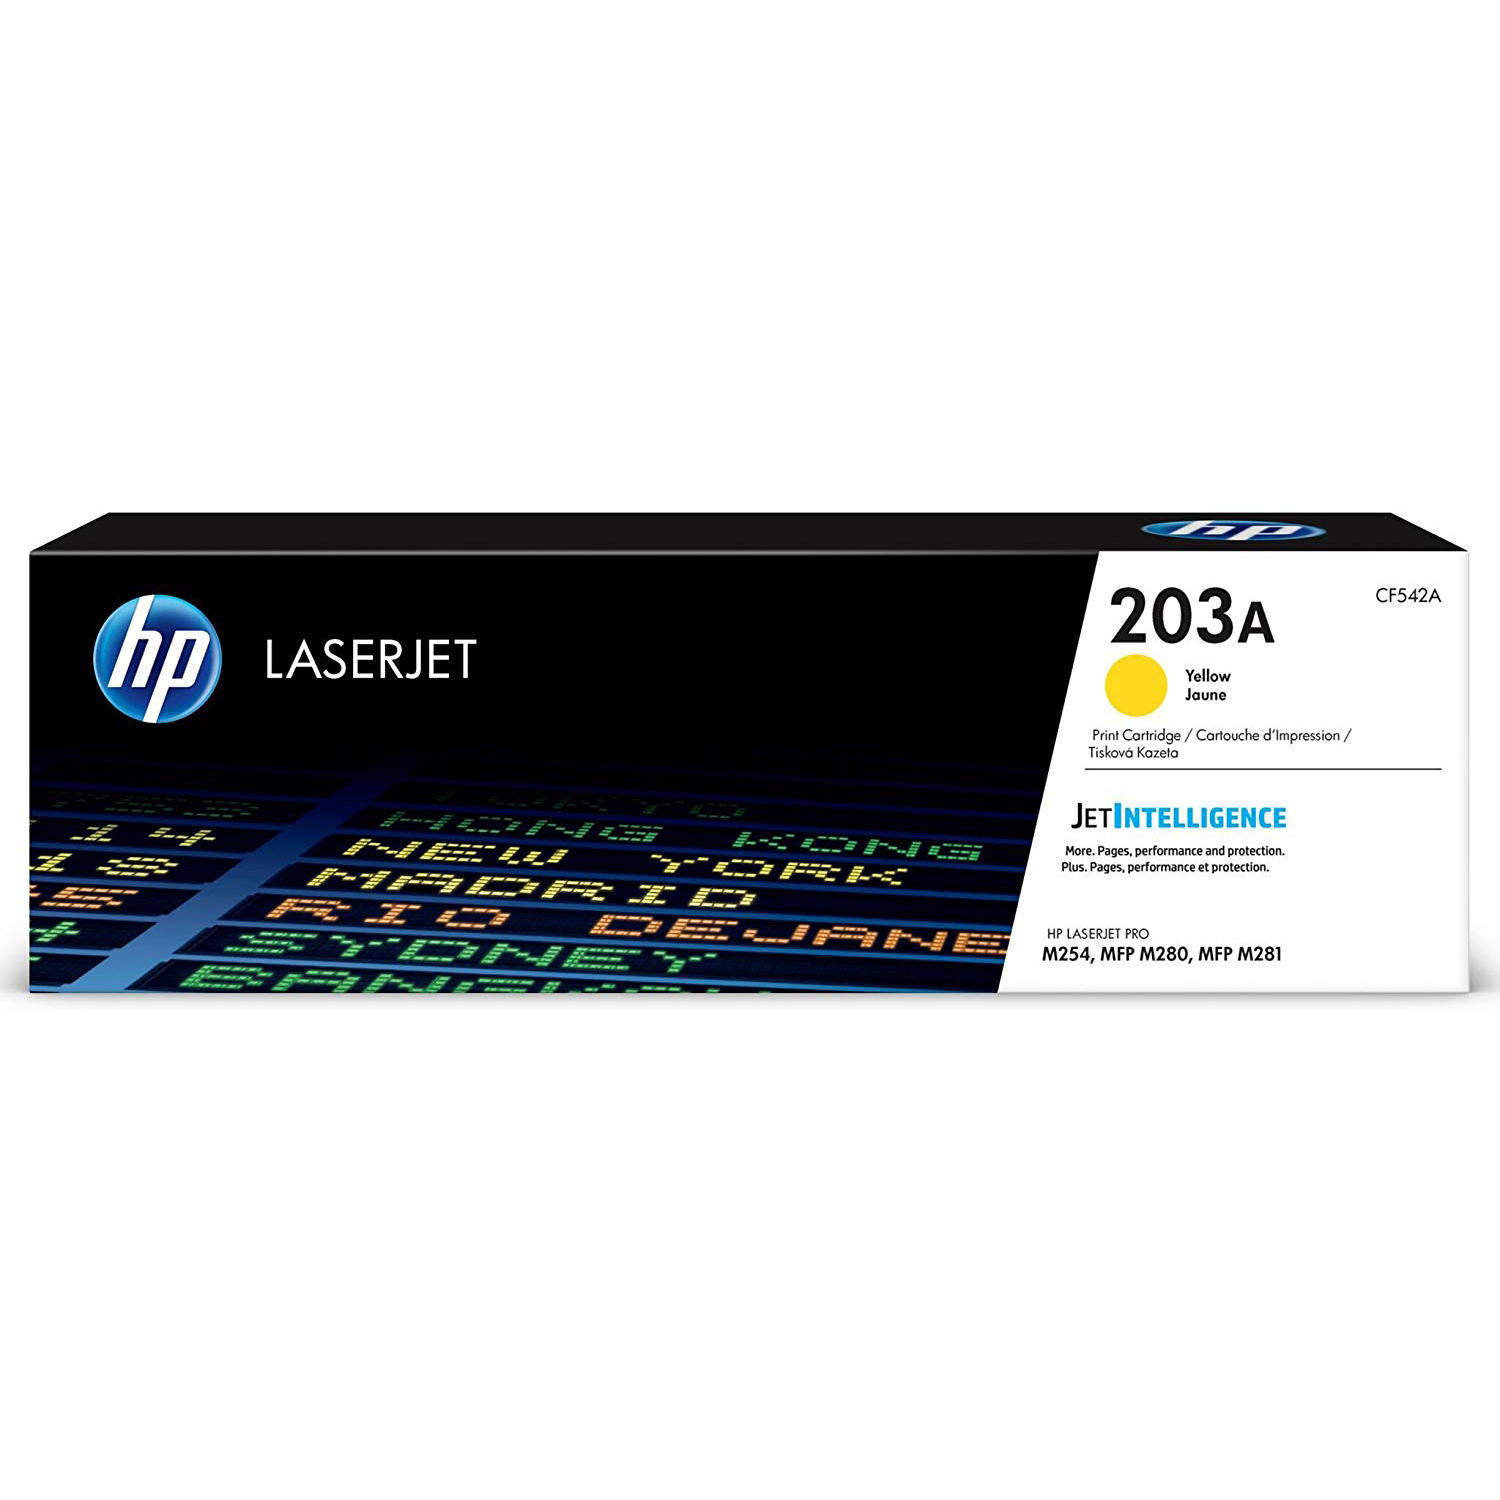 HP 203A (CF542A) Laserjet Toner Cartridge - Yellow